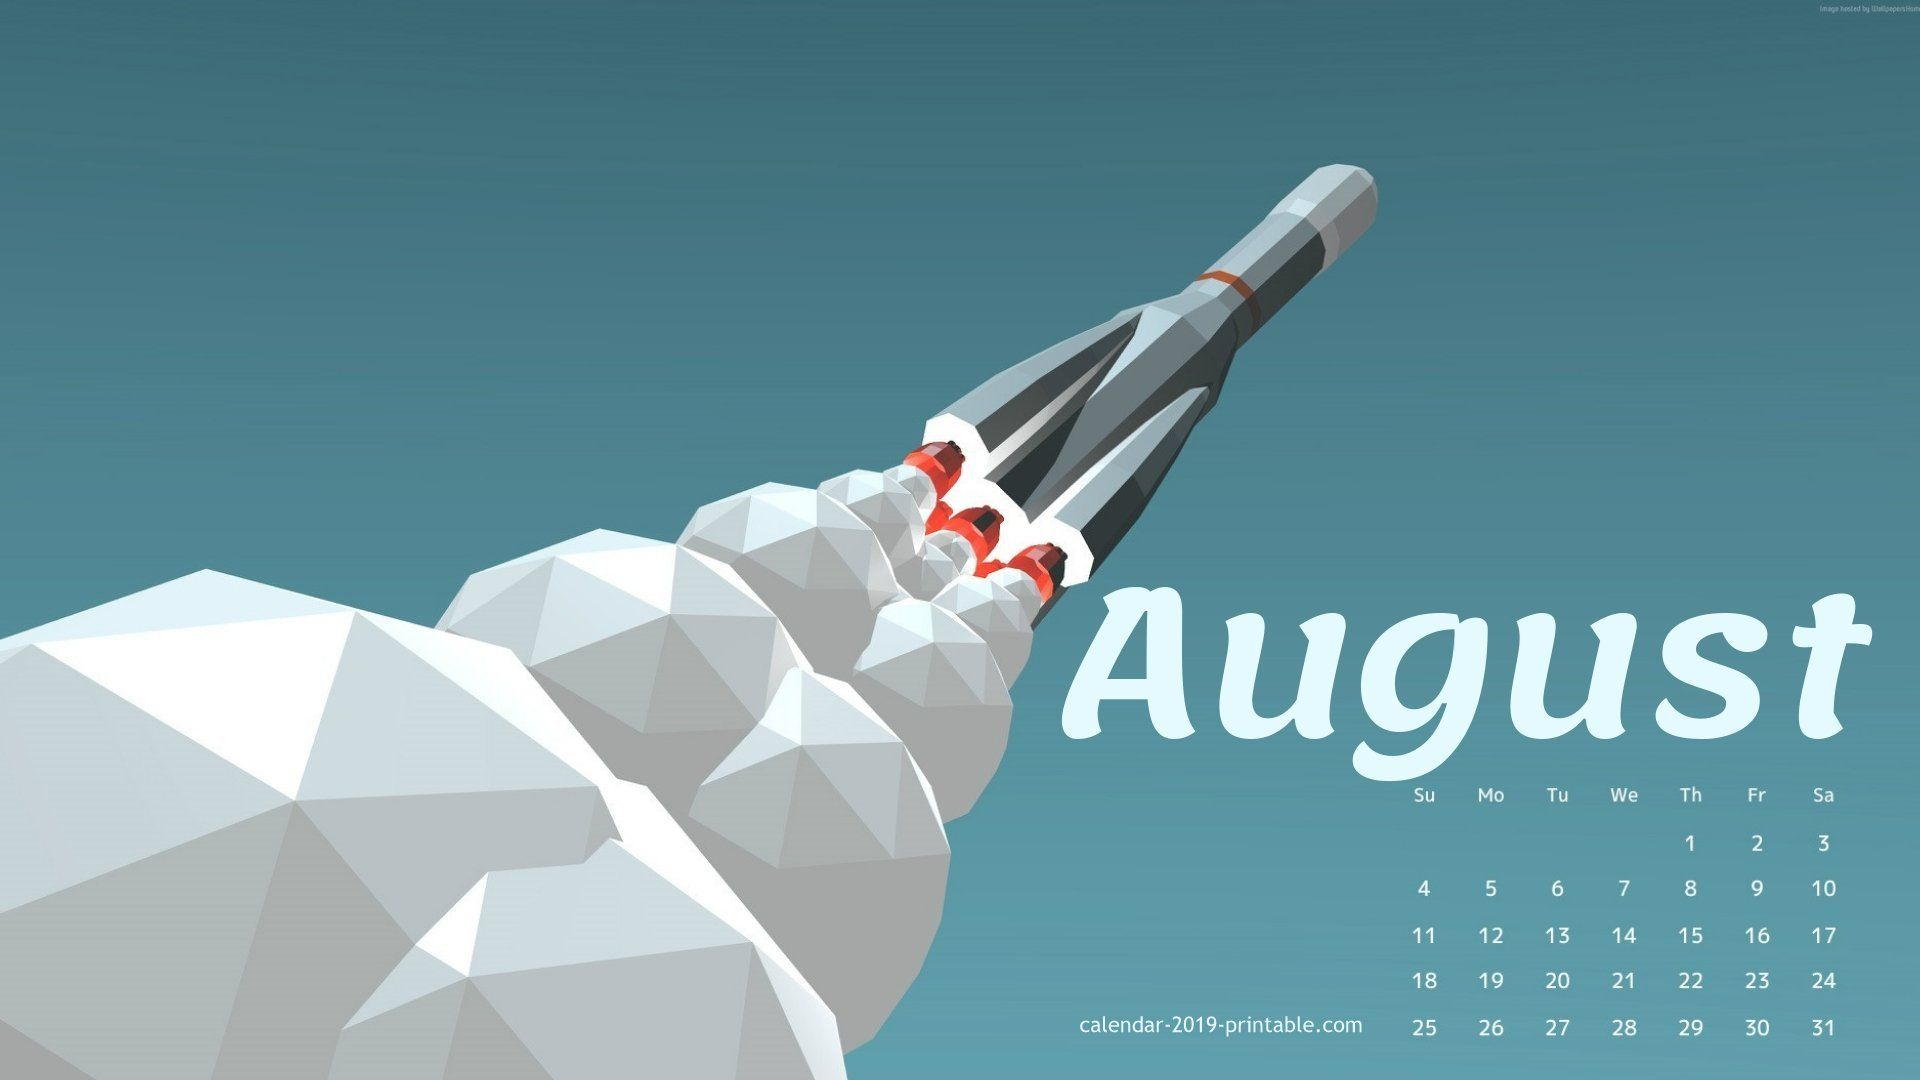 august 2019 cute calendar wallpaper 2019 Calendars Calendar 1920x1080